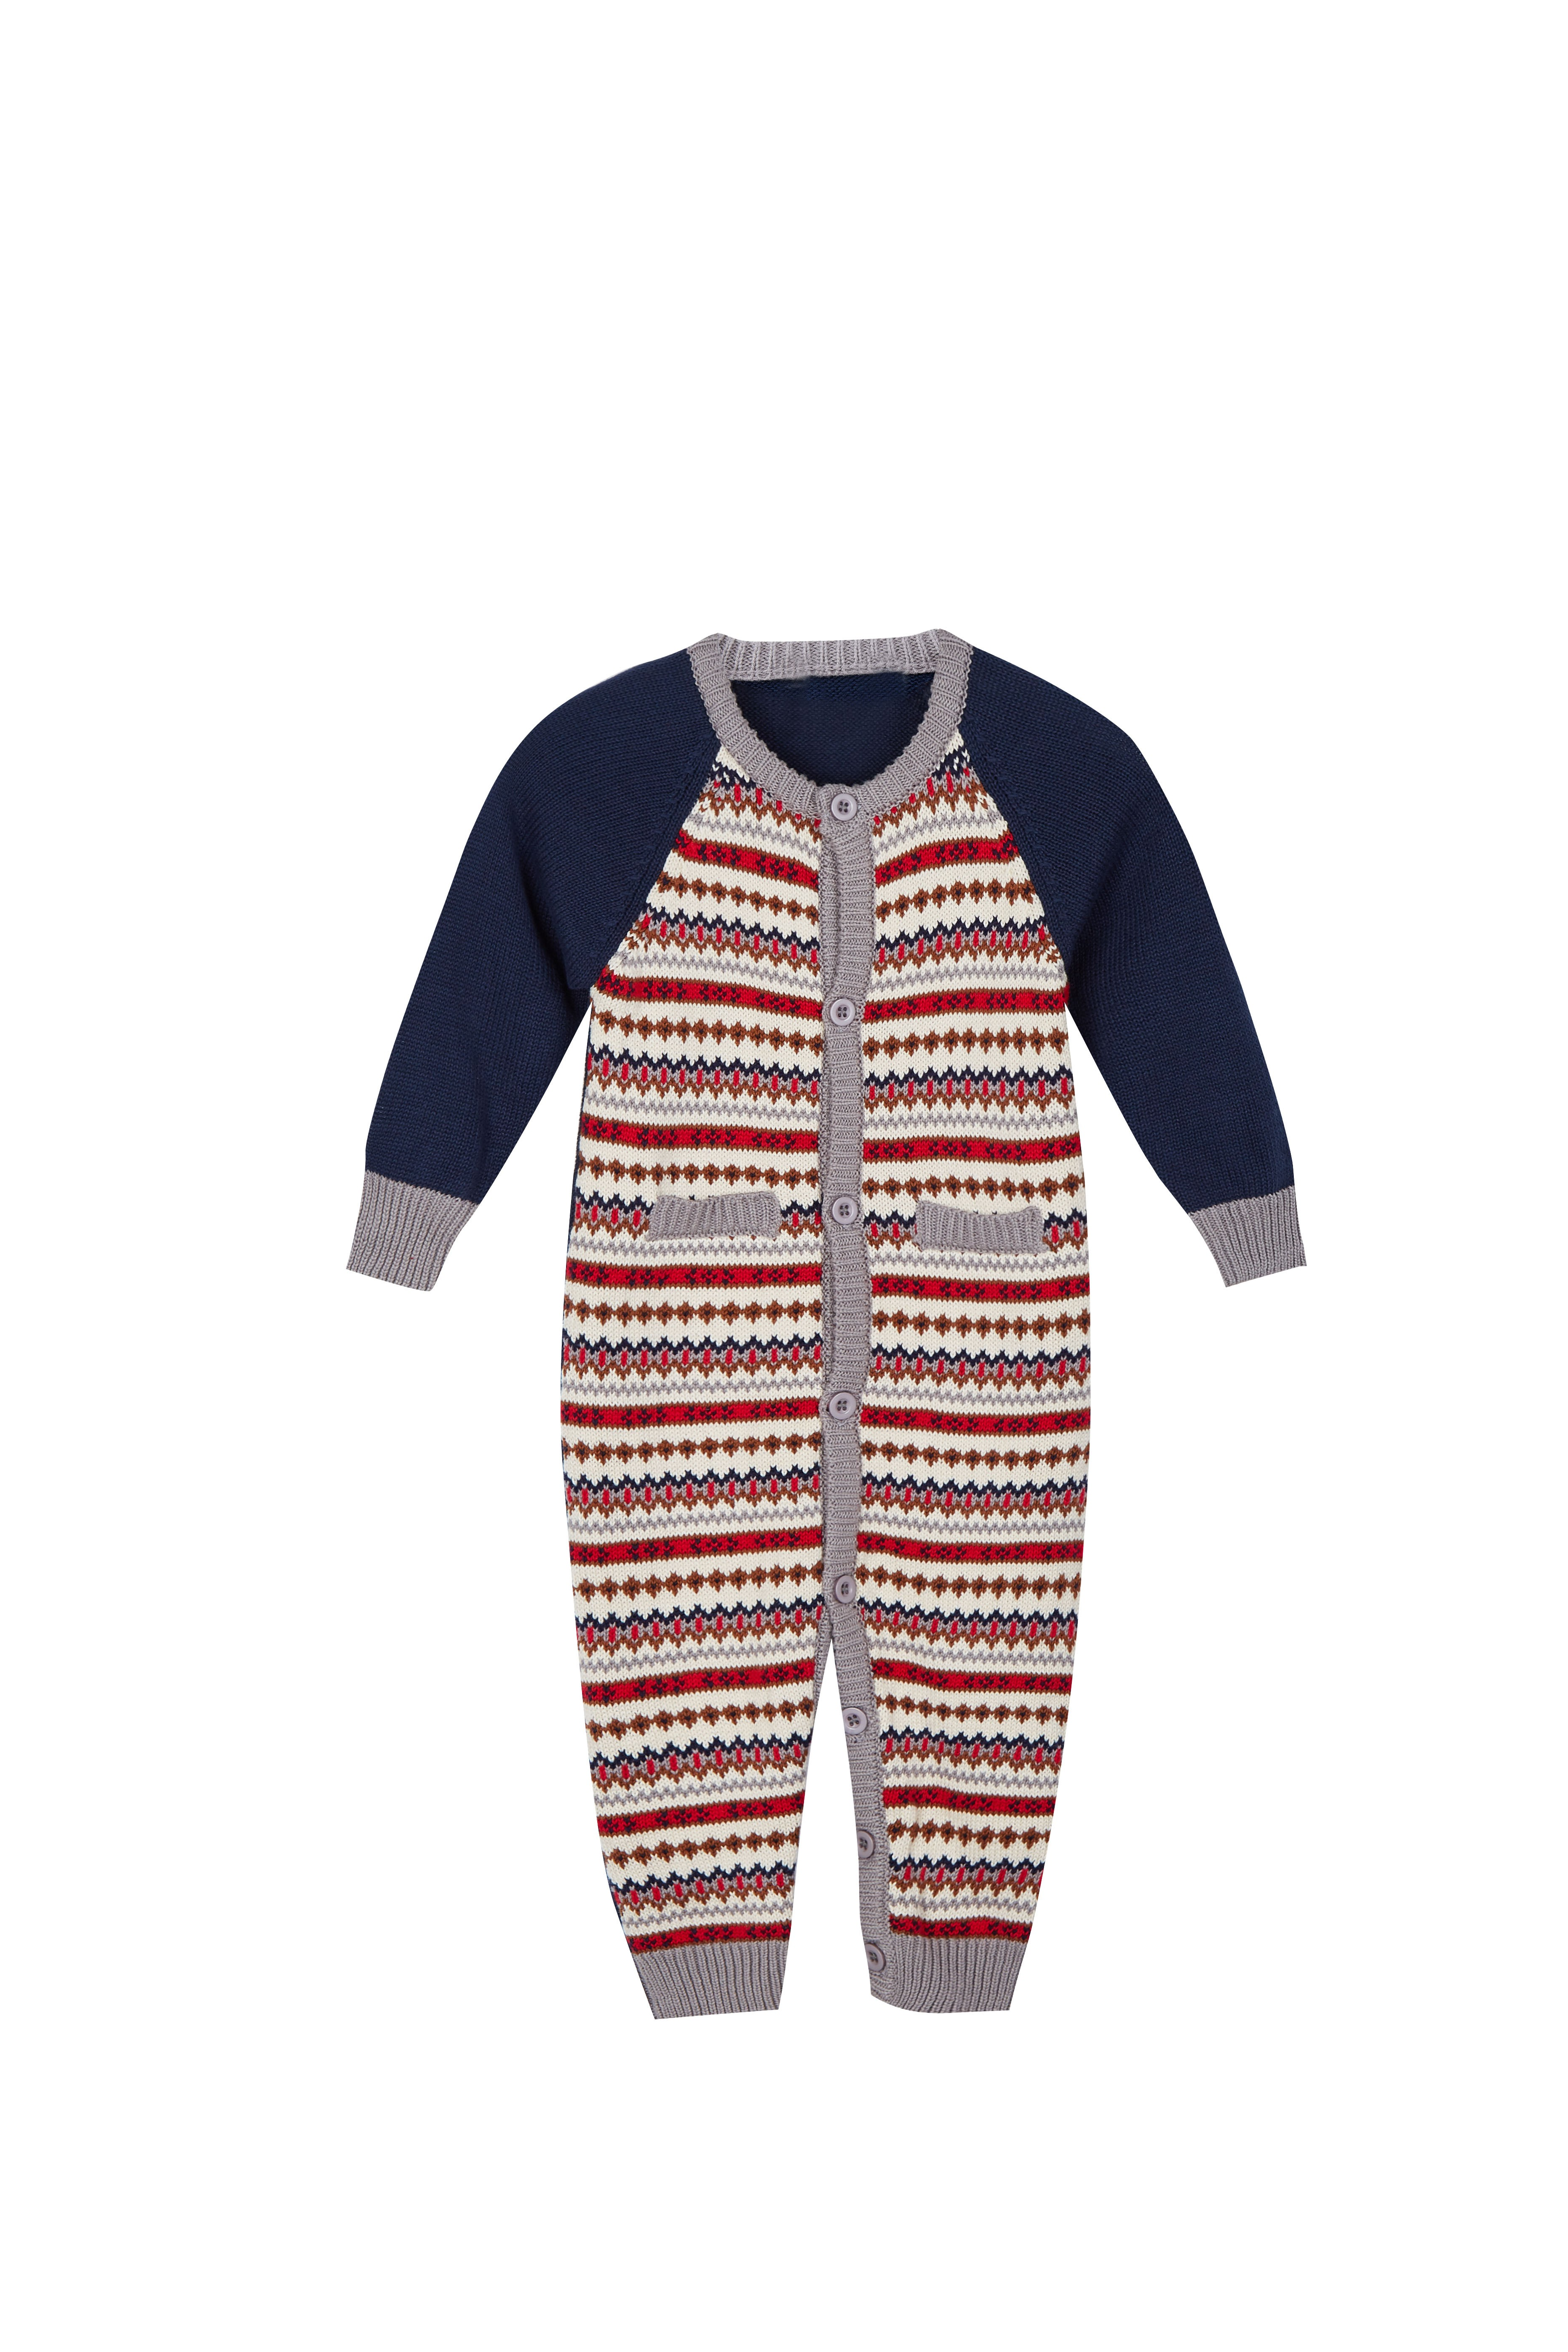 Baby's Warm Jacquard Pajamas Button Closure Crew Neck Sweater